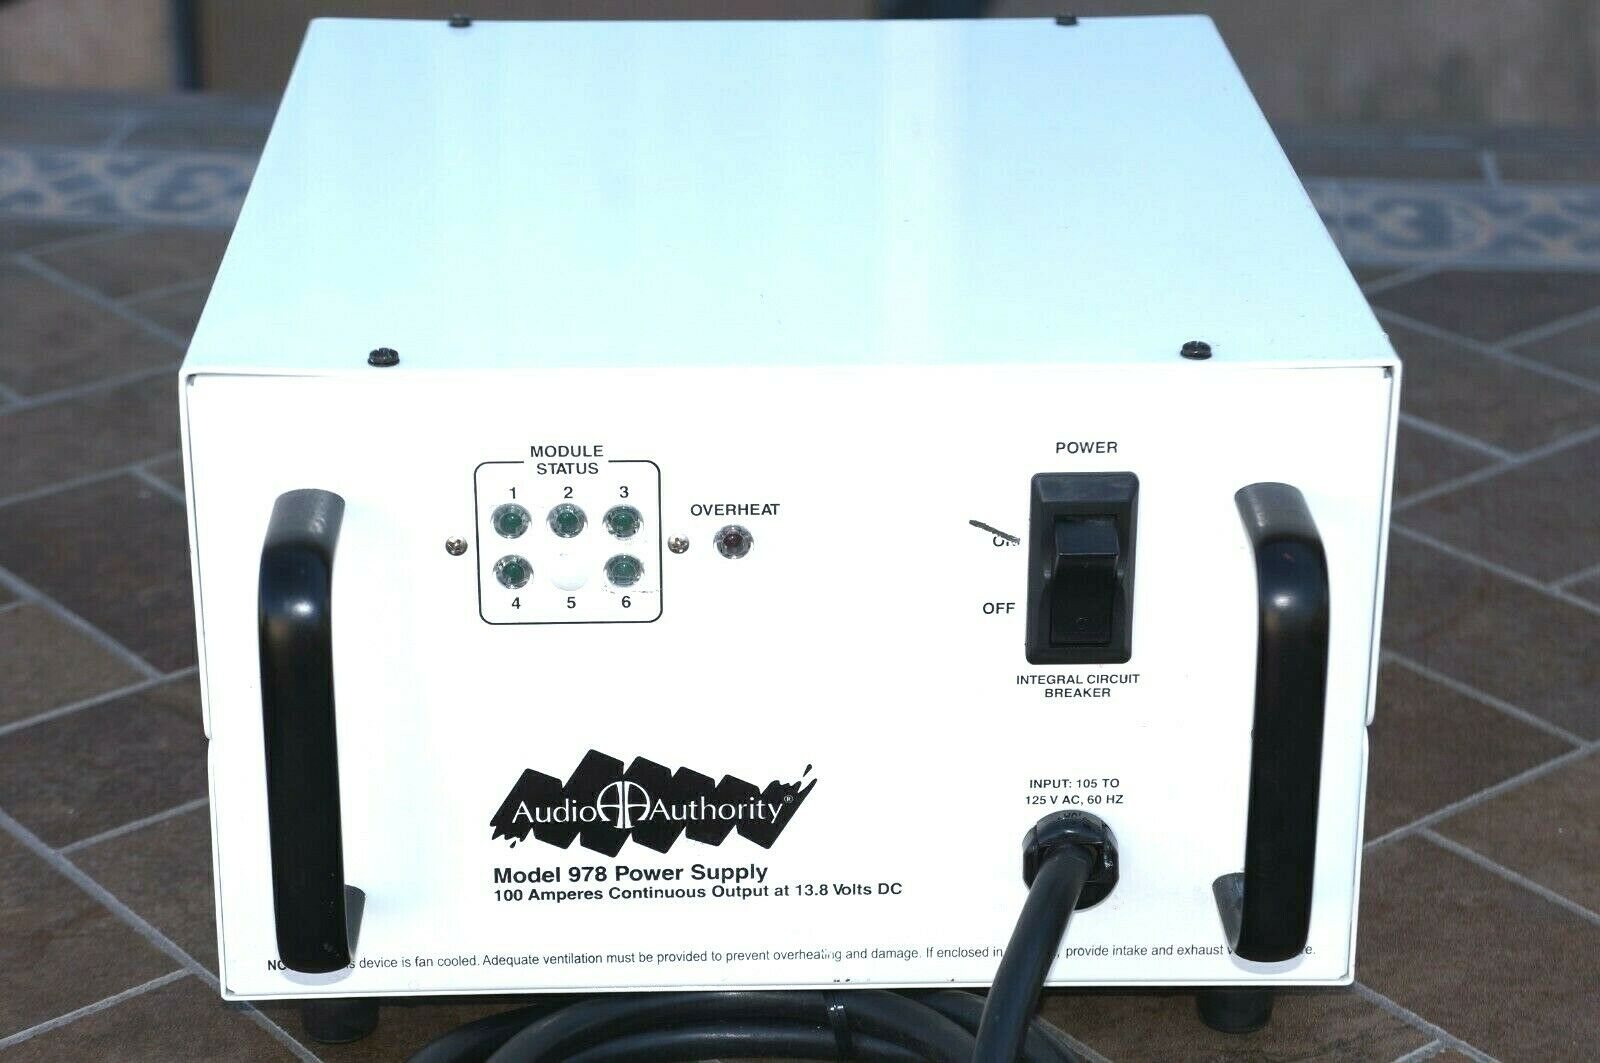 AUDIO AUTHORITY Model 978 POWER SUPPLLY SYSTEM 100 AMPERES. Buy it now for 265.00